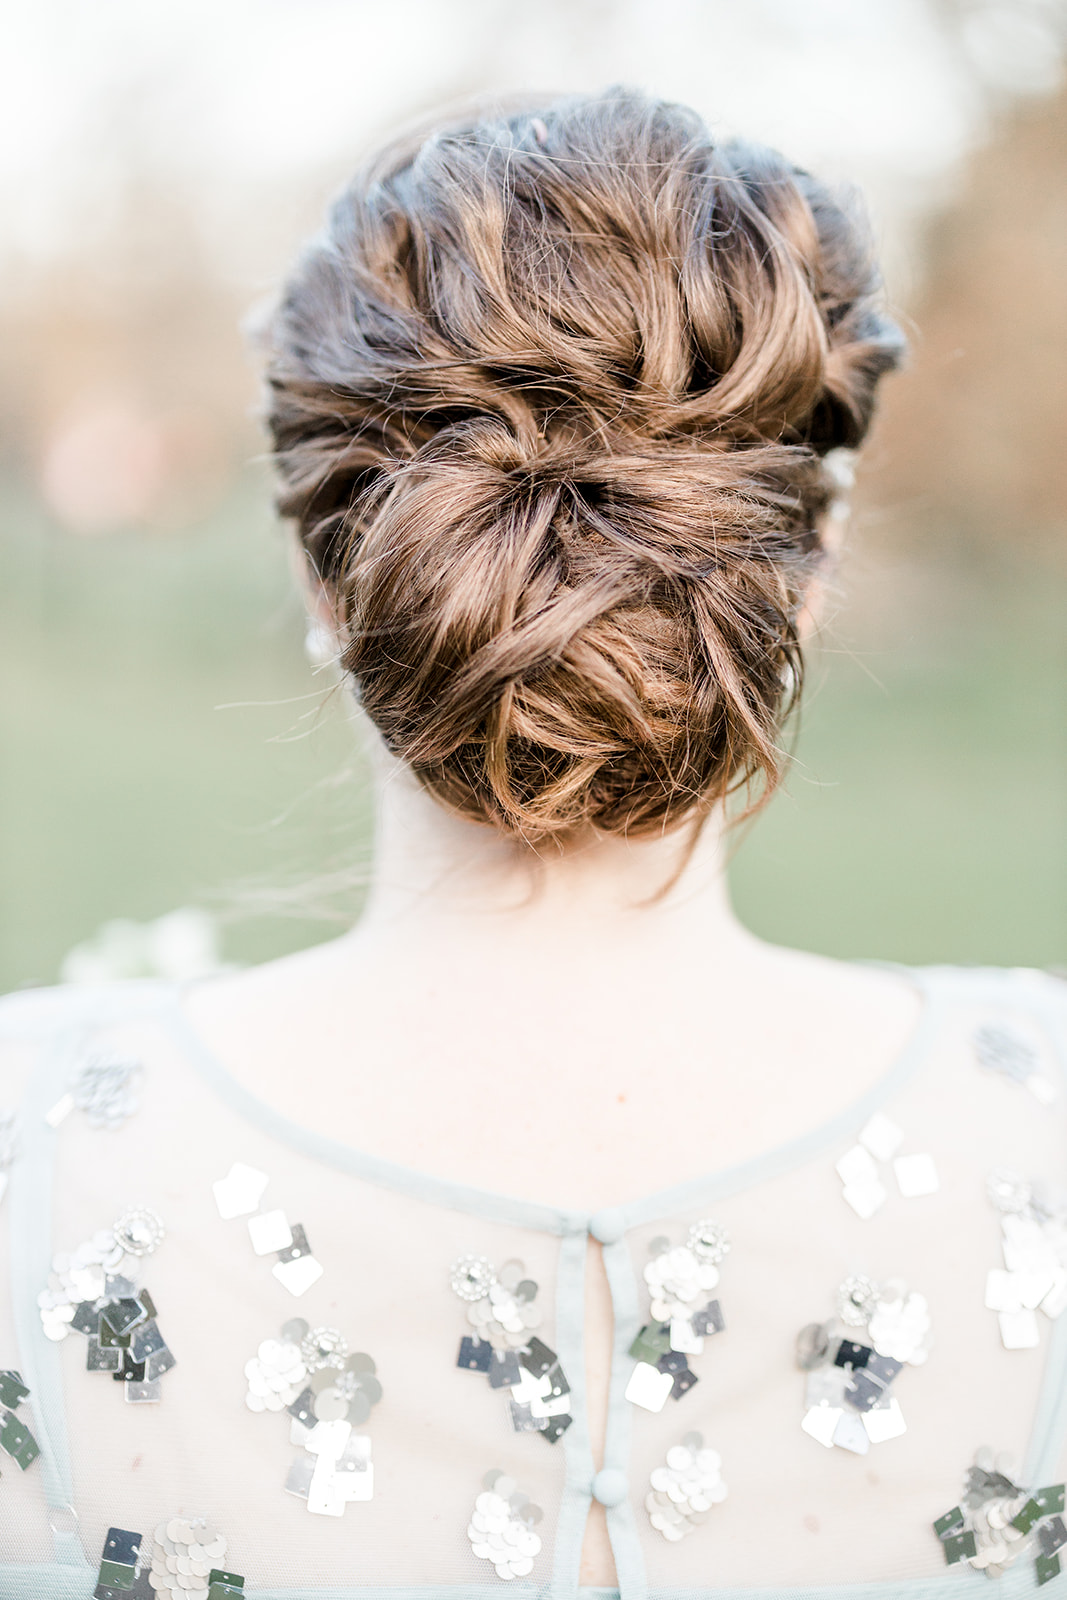 Bridal chignon hairstyle - Kelsie Scully Photography